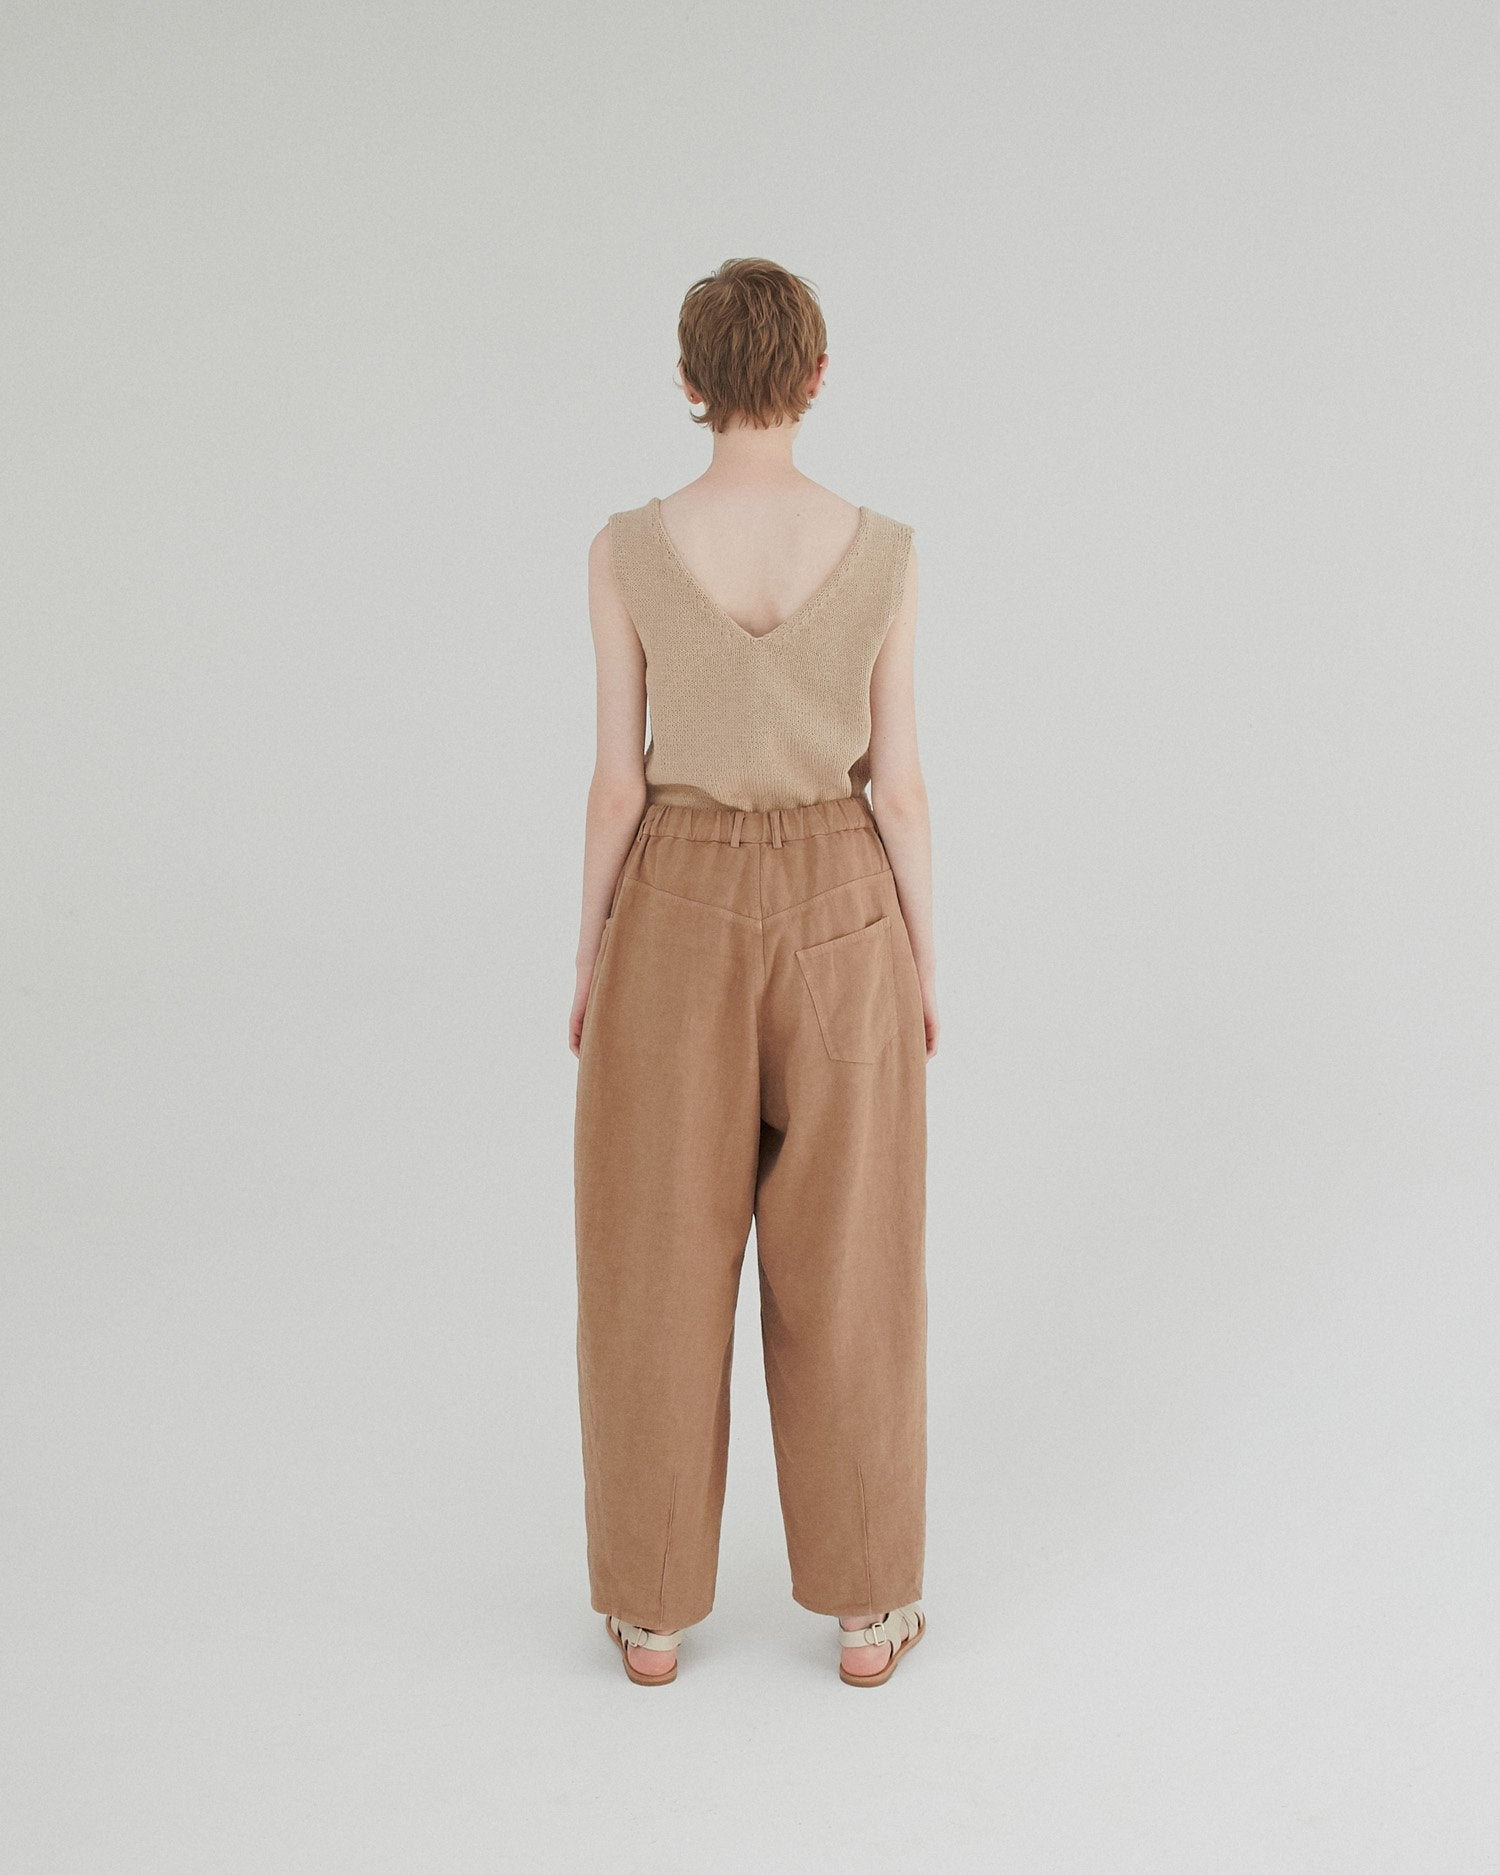 Ramie Crossed Trousers in Clay Pot